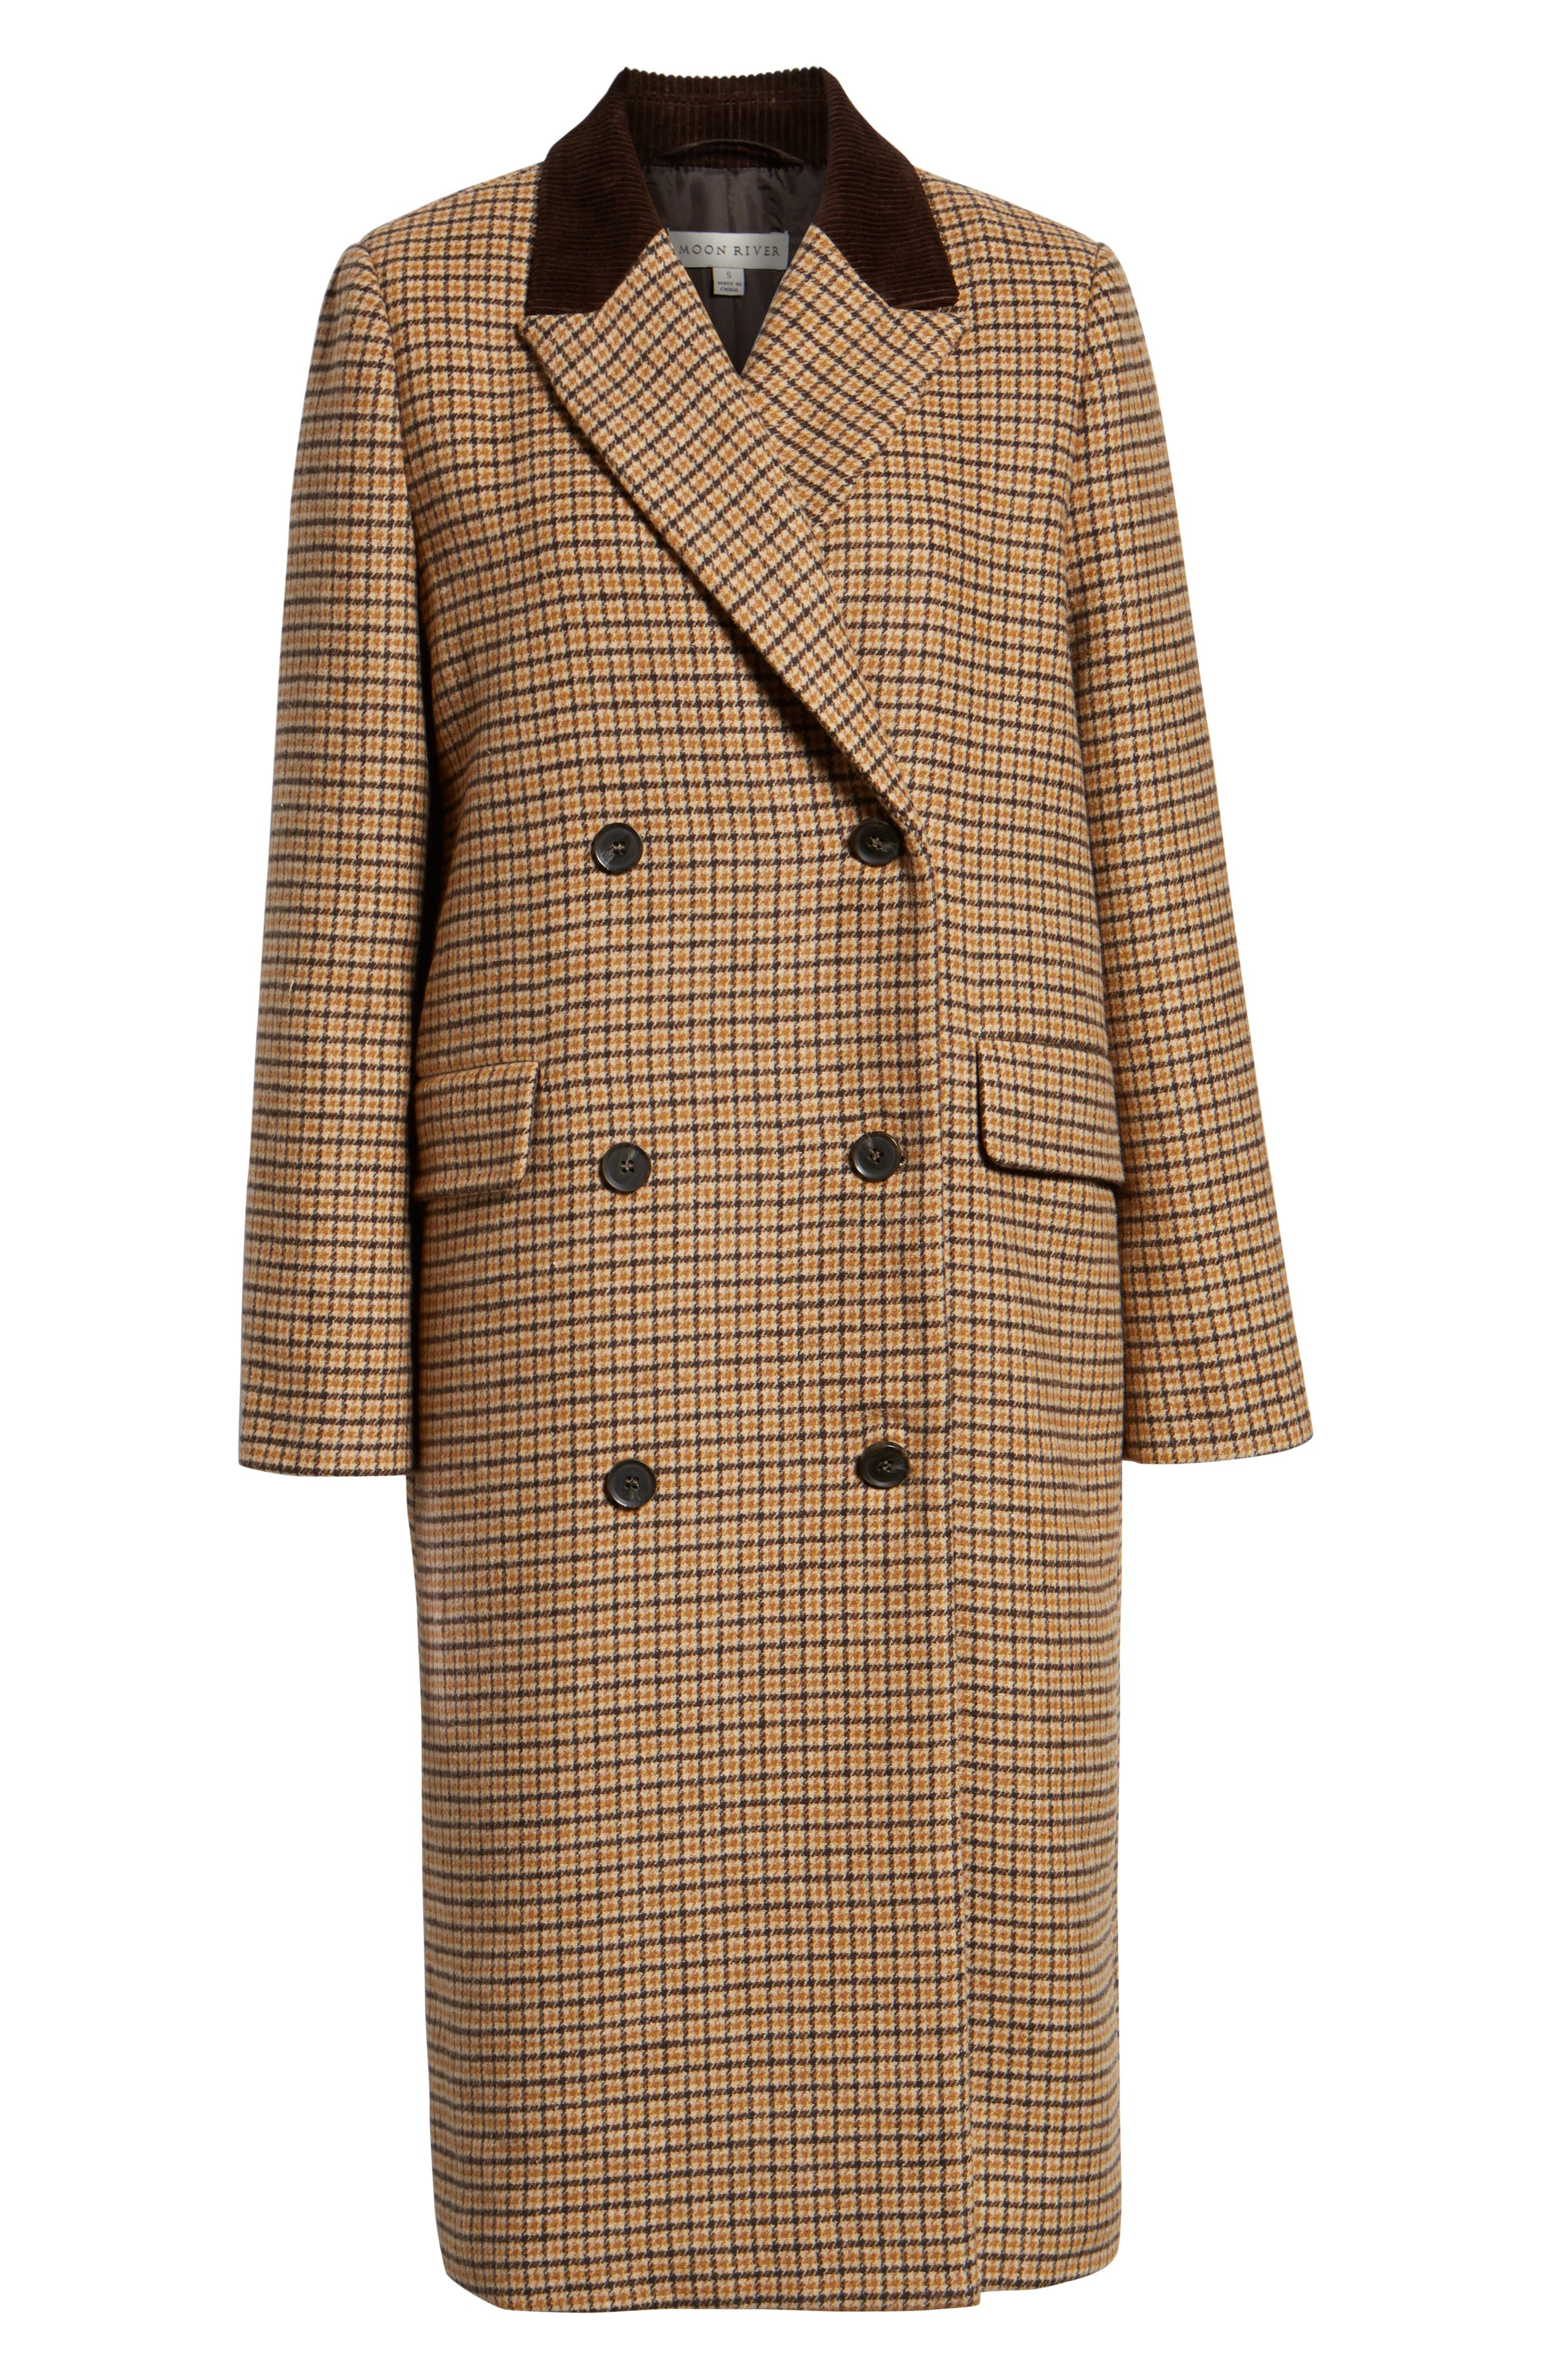 MOON RIVER,                             Houndstooth Double Breasted COat,                             Alternate thumbnail 6, color,                             BROWN PLAID